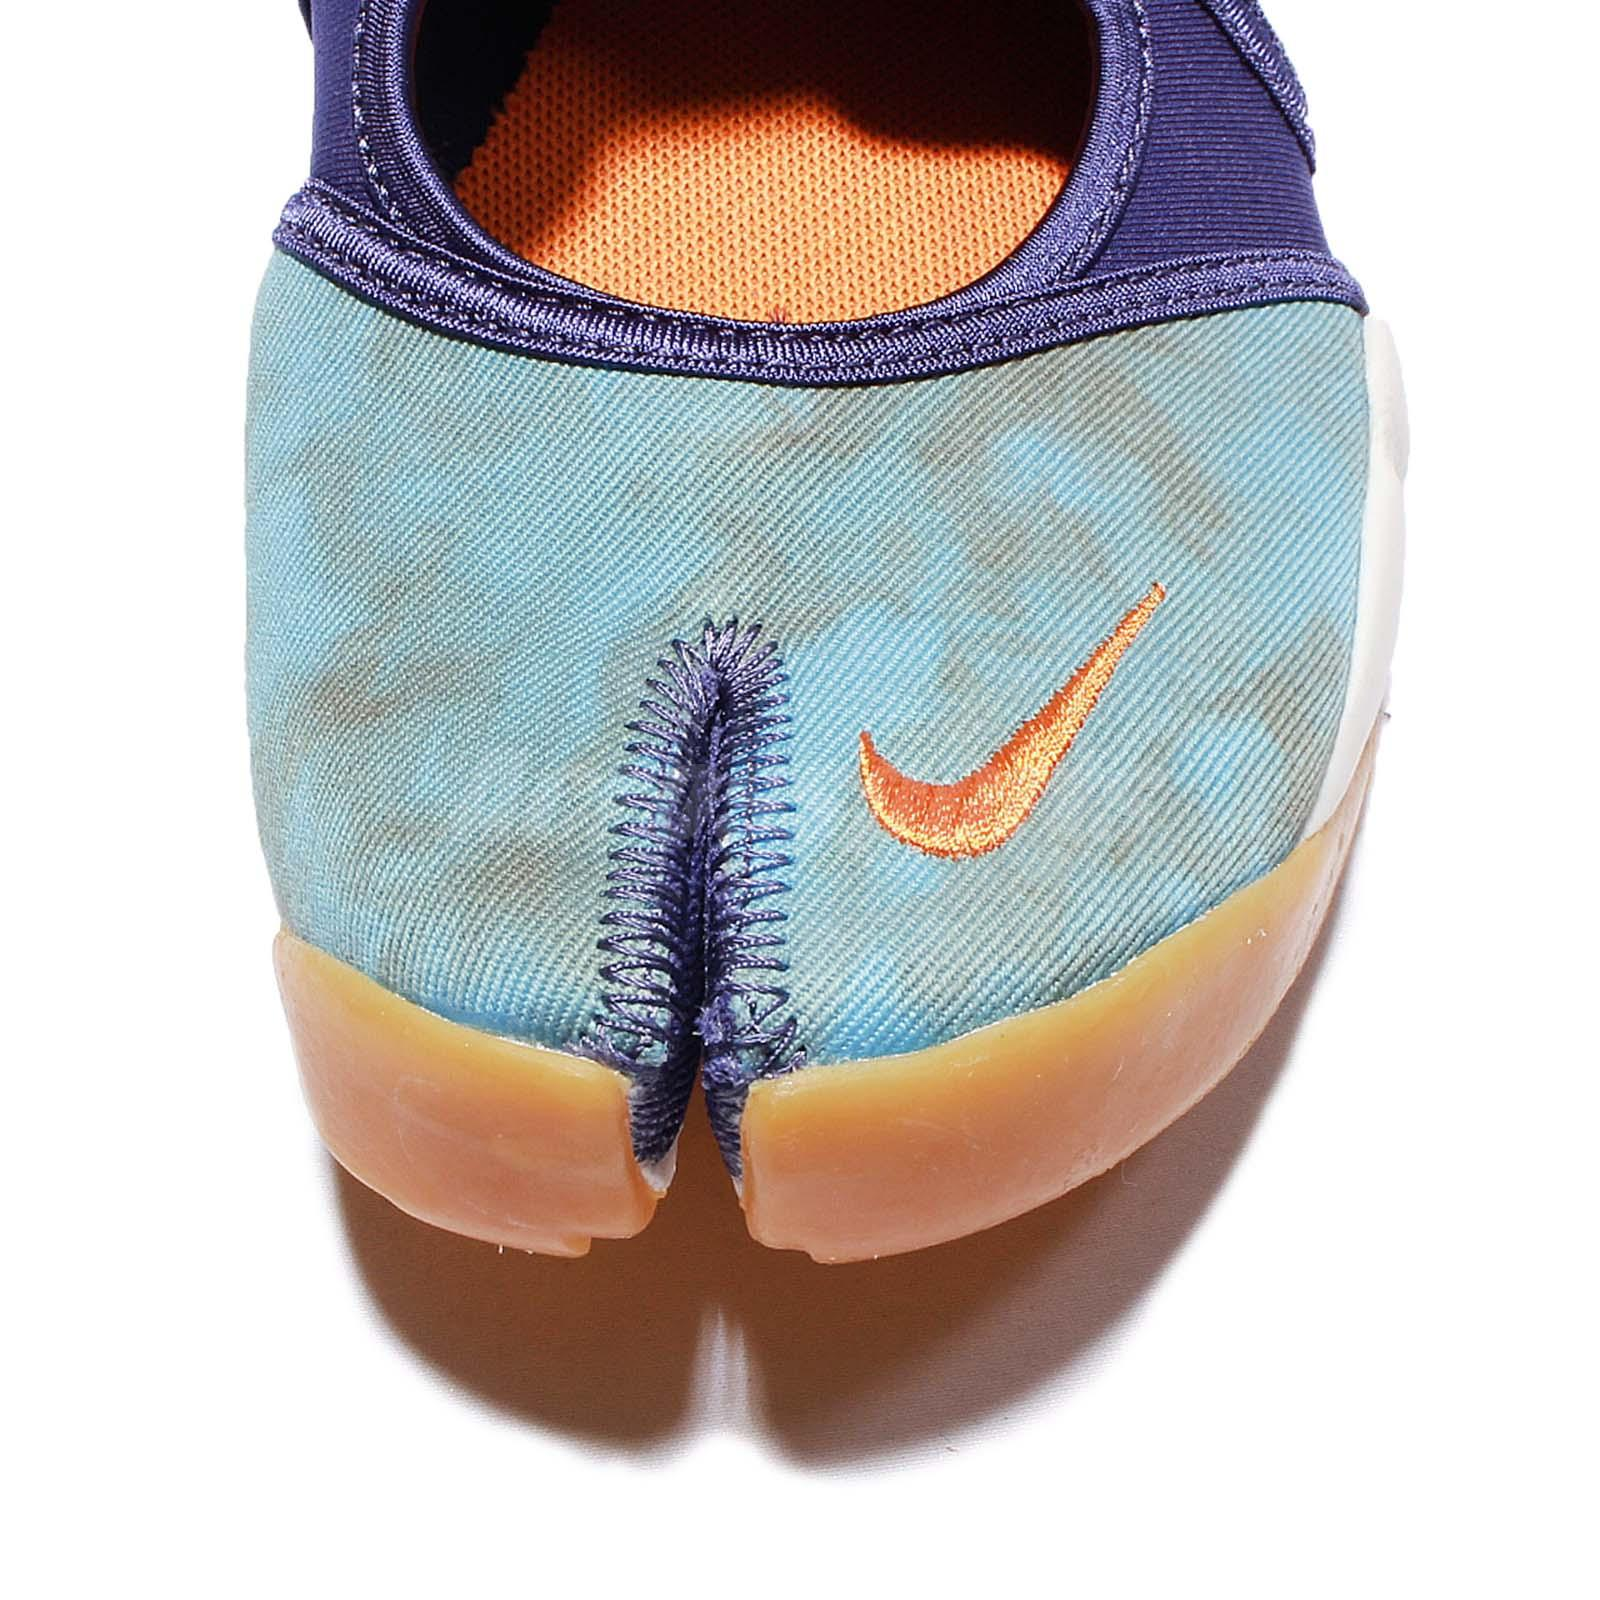 Wmns nike air rift prm qs purple blue tie dye womens for Nike tie dye shirt and shorts